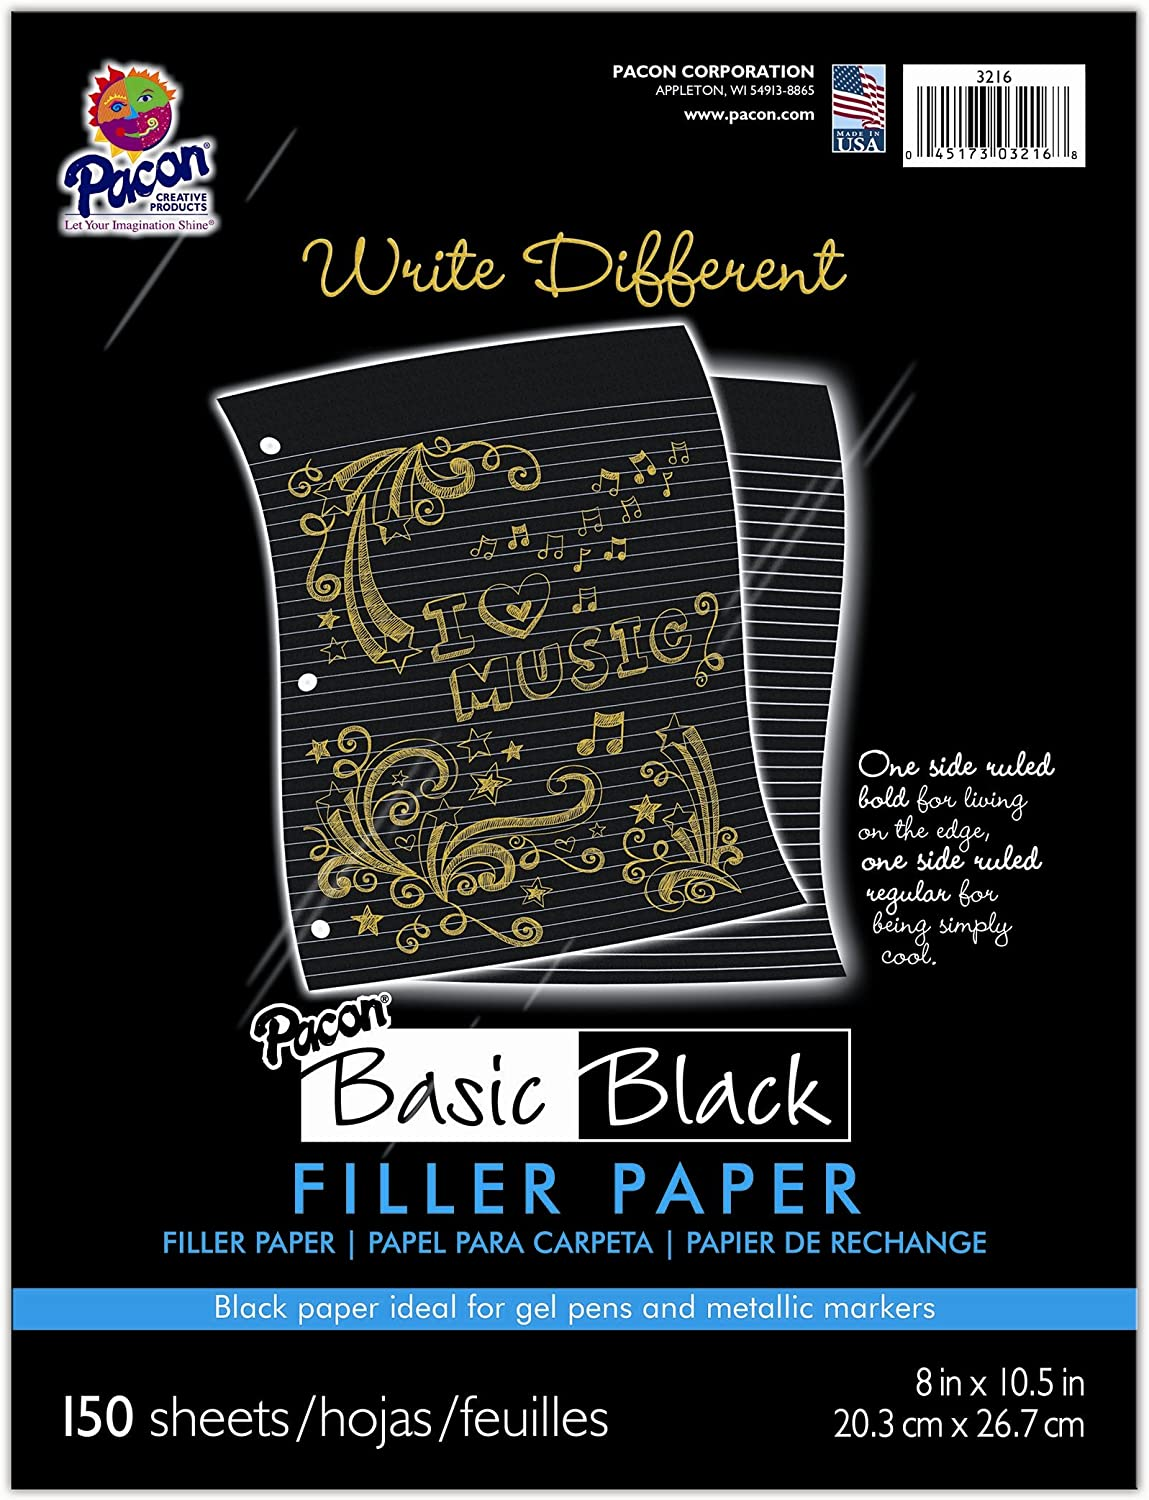 Pacon Rolled Black Paper (3216)